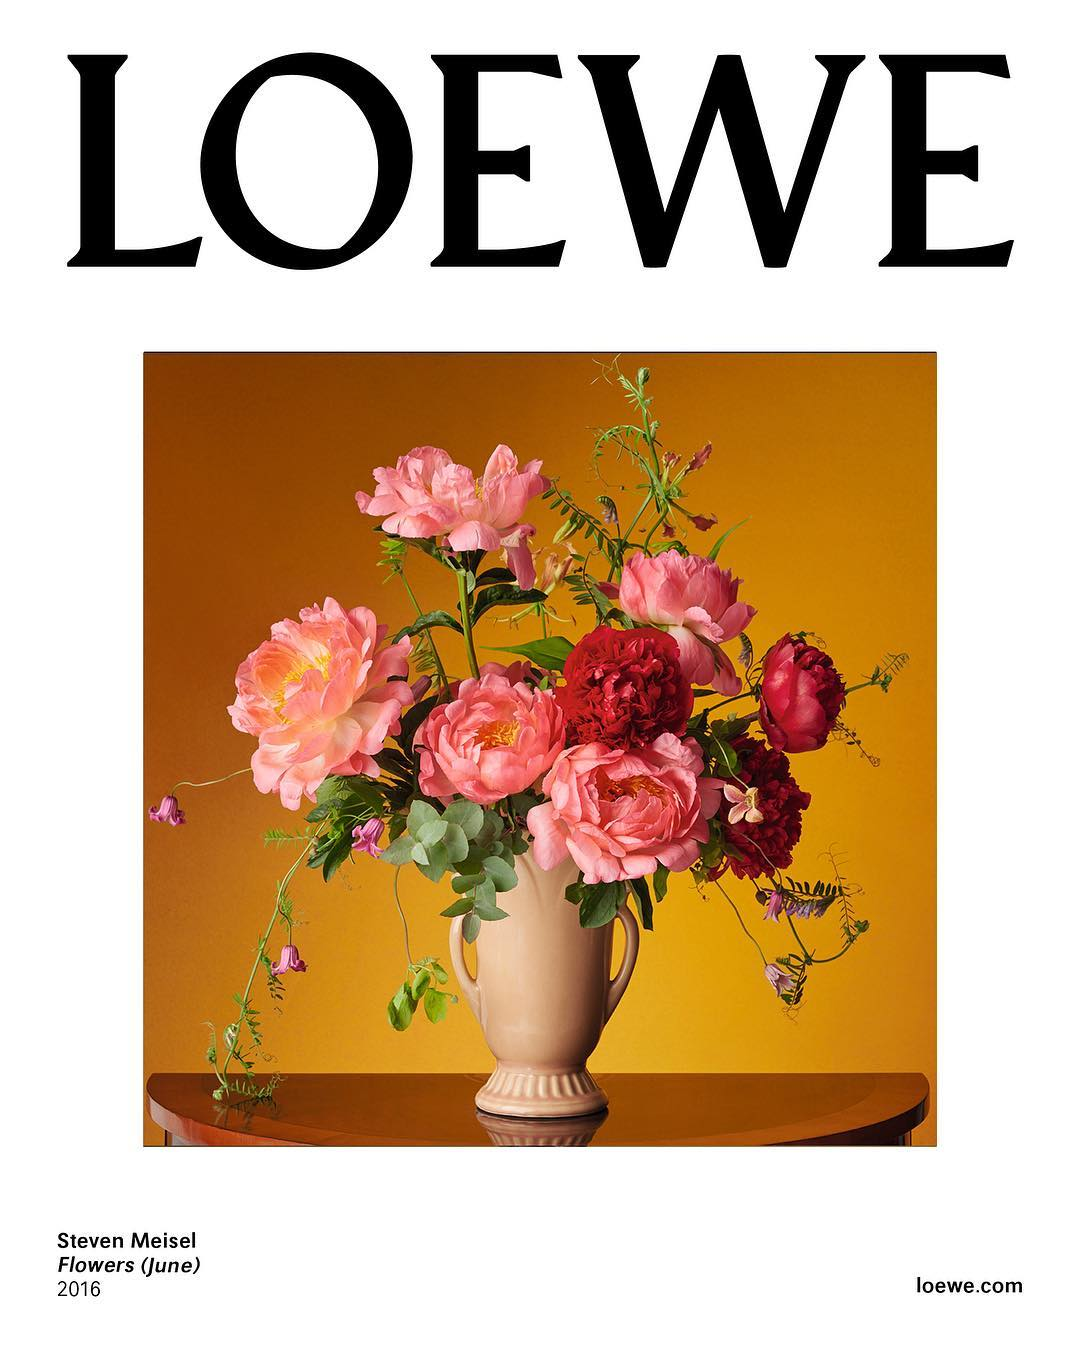 LOEWE- Photo by Steven Meisel. Set Design by Mary Howard. Creative Direction by Jonathan Anderson.